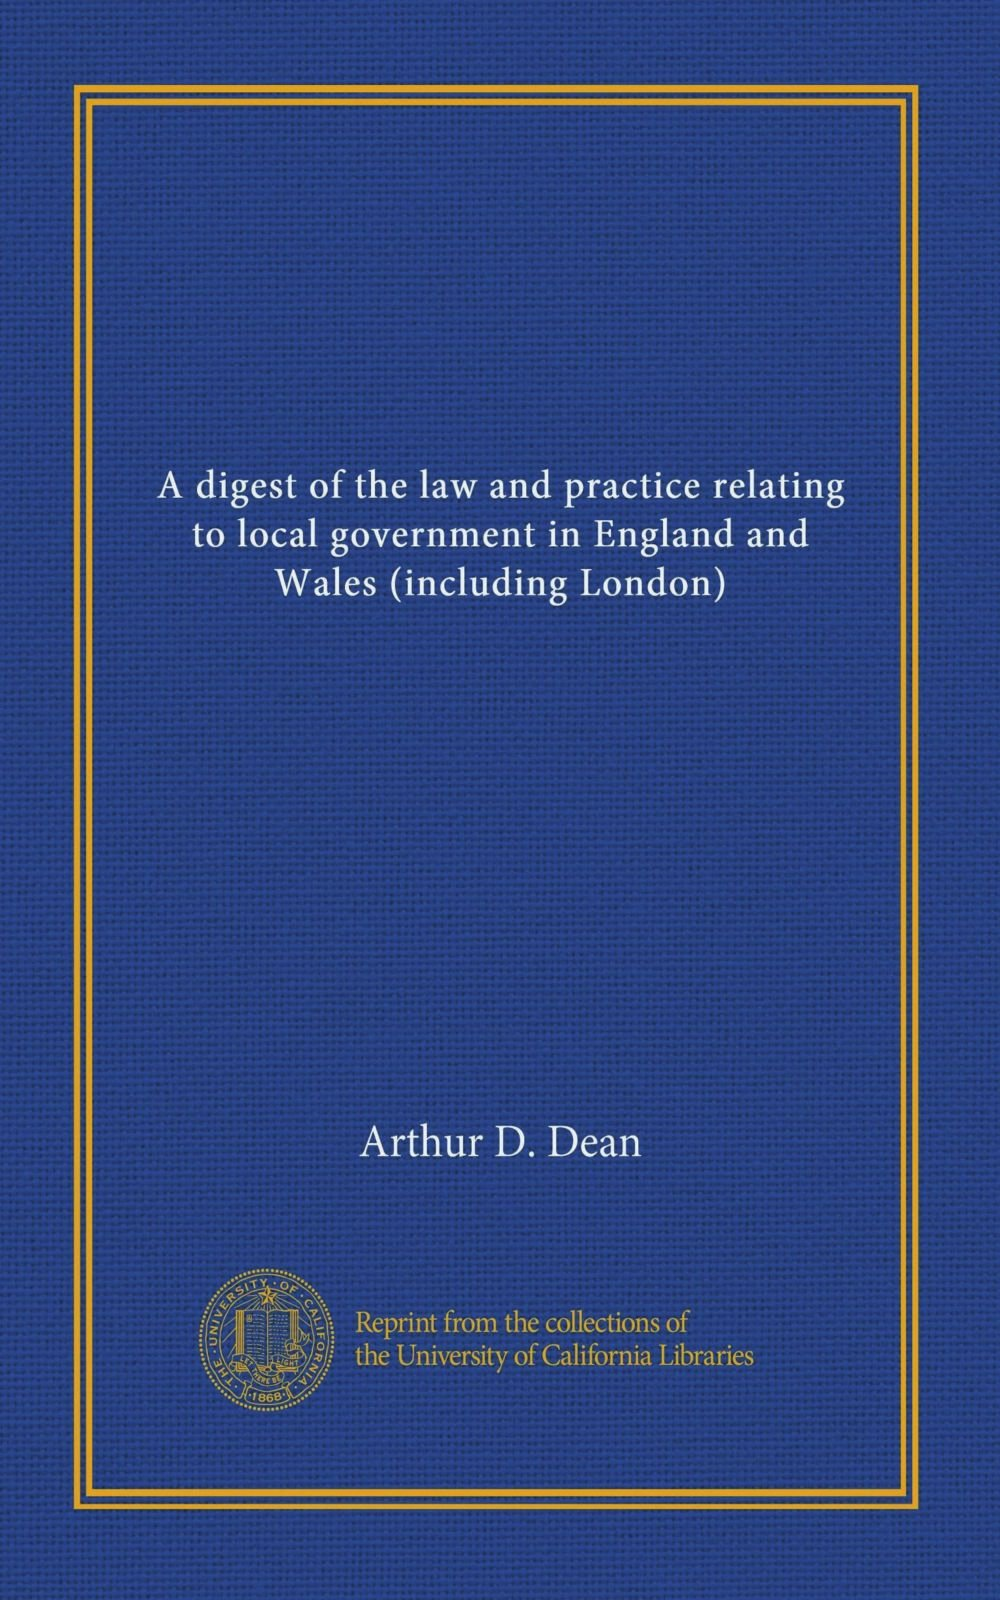 A digest of the law and practice relating to local government in England and Wales (including London) PDF